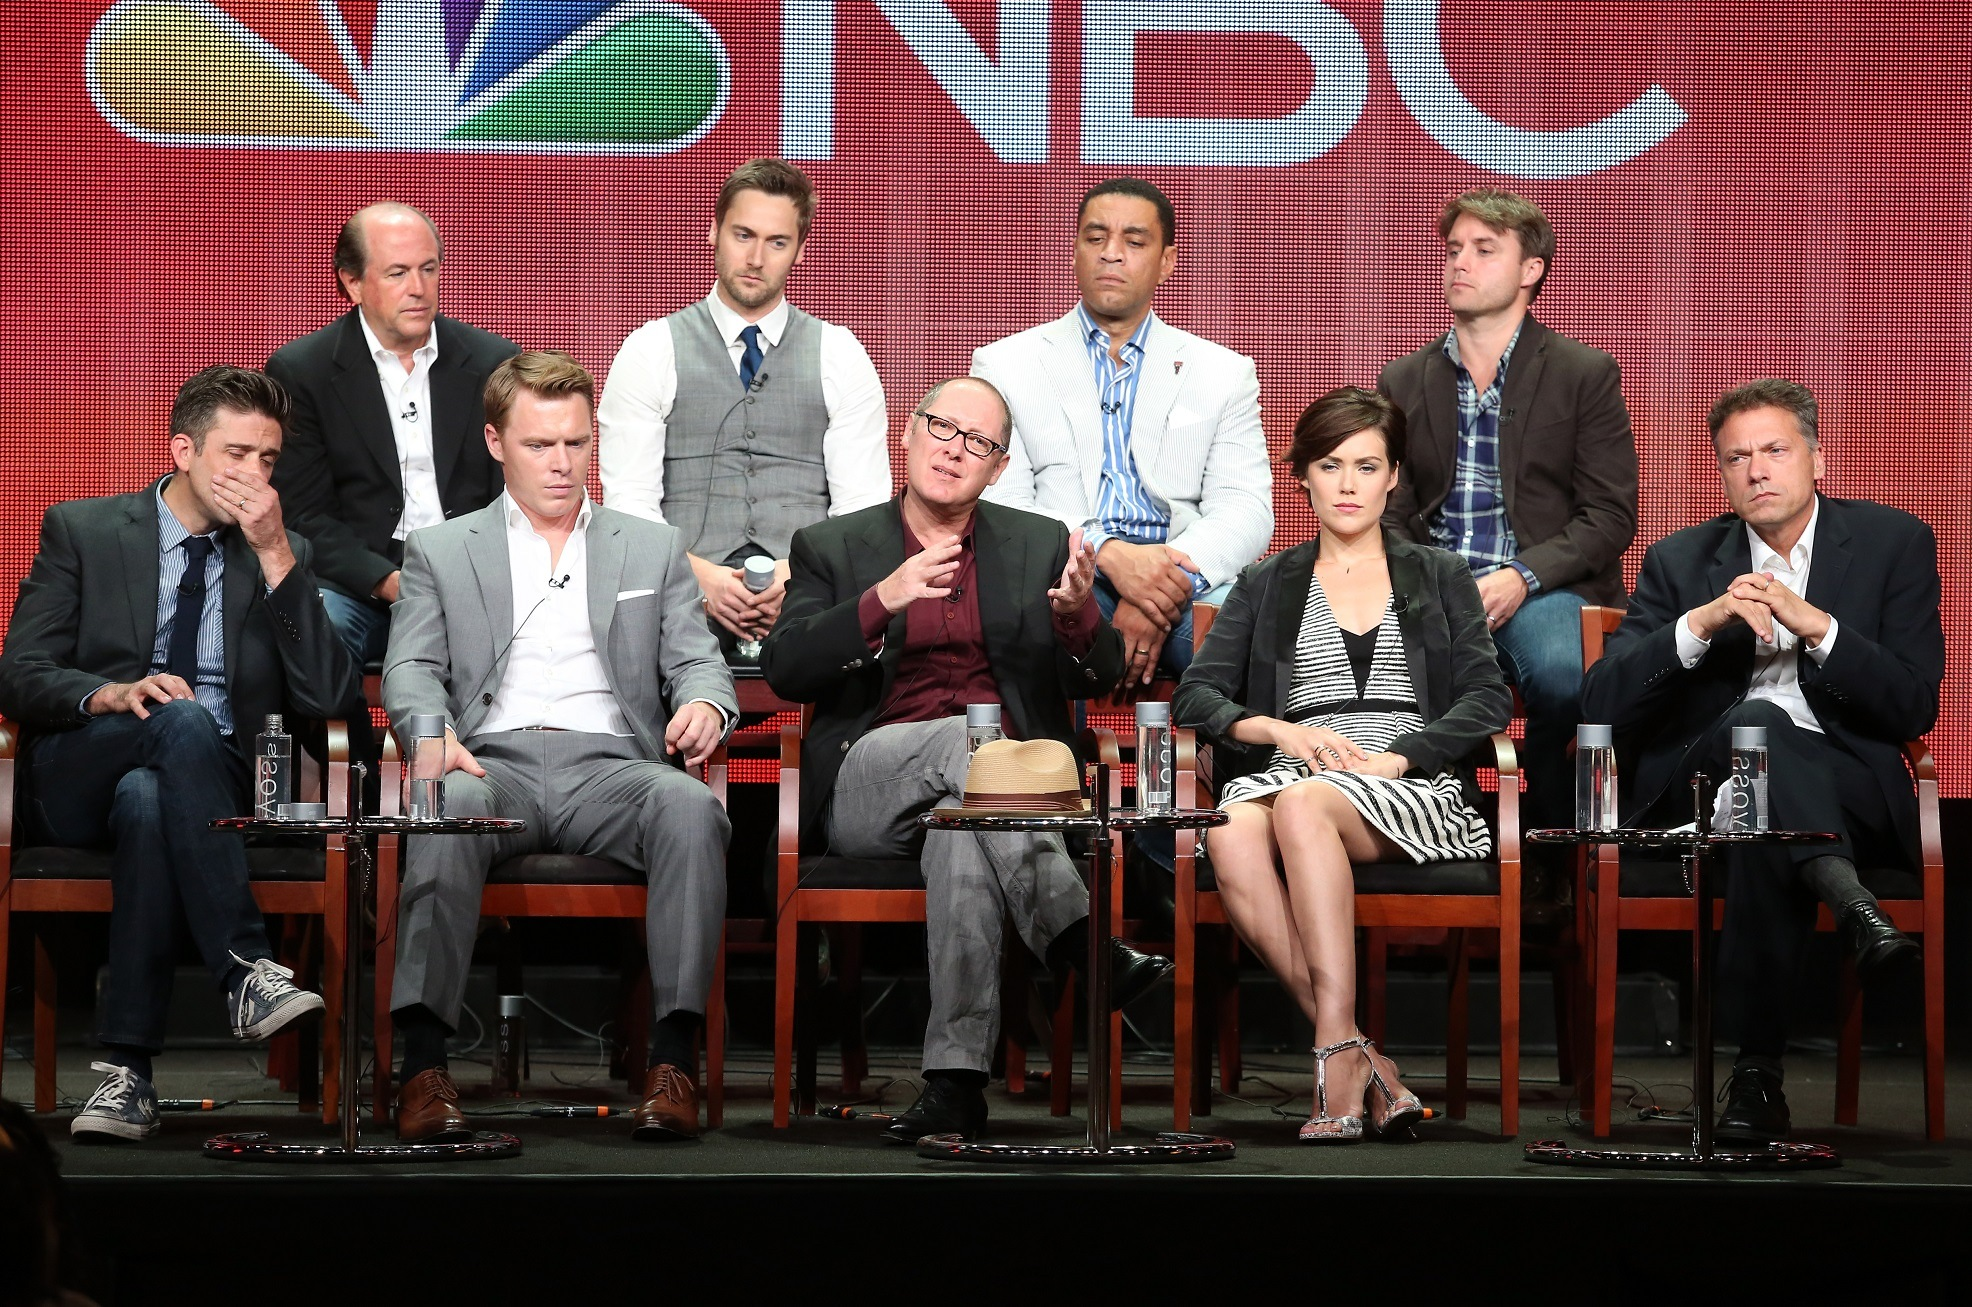 Megan Boone (front row, second from right) and the cast of NBC drama The Blacklist.